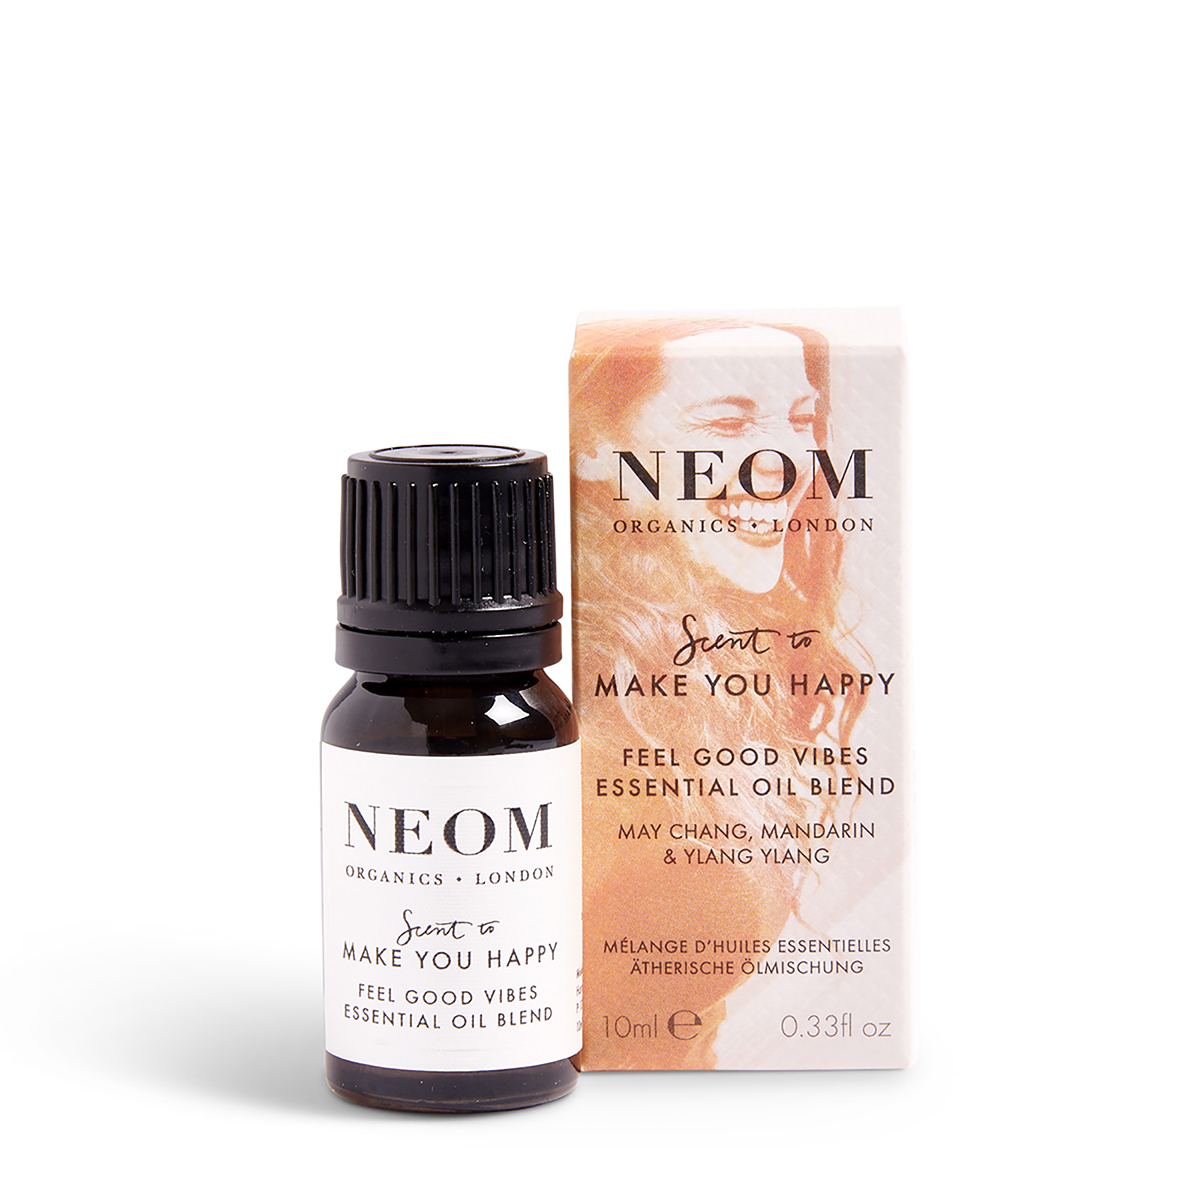 Feel Good Vibes Essential Oil Blend Neom Organics, home fragrance from Beautiful Brands